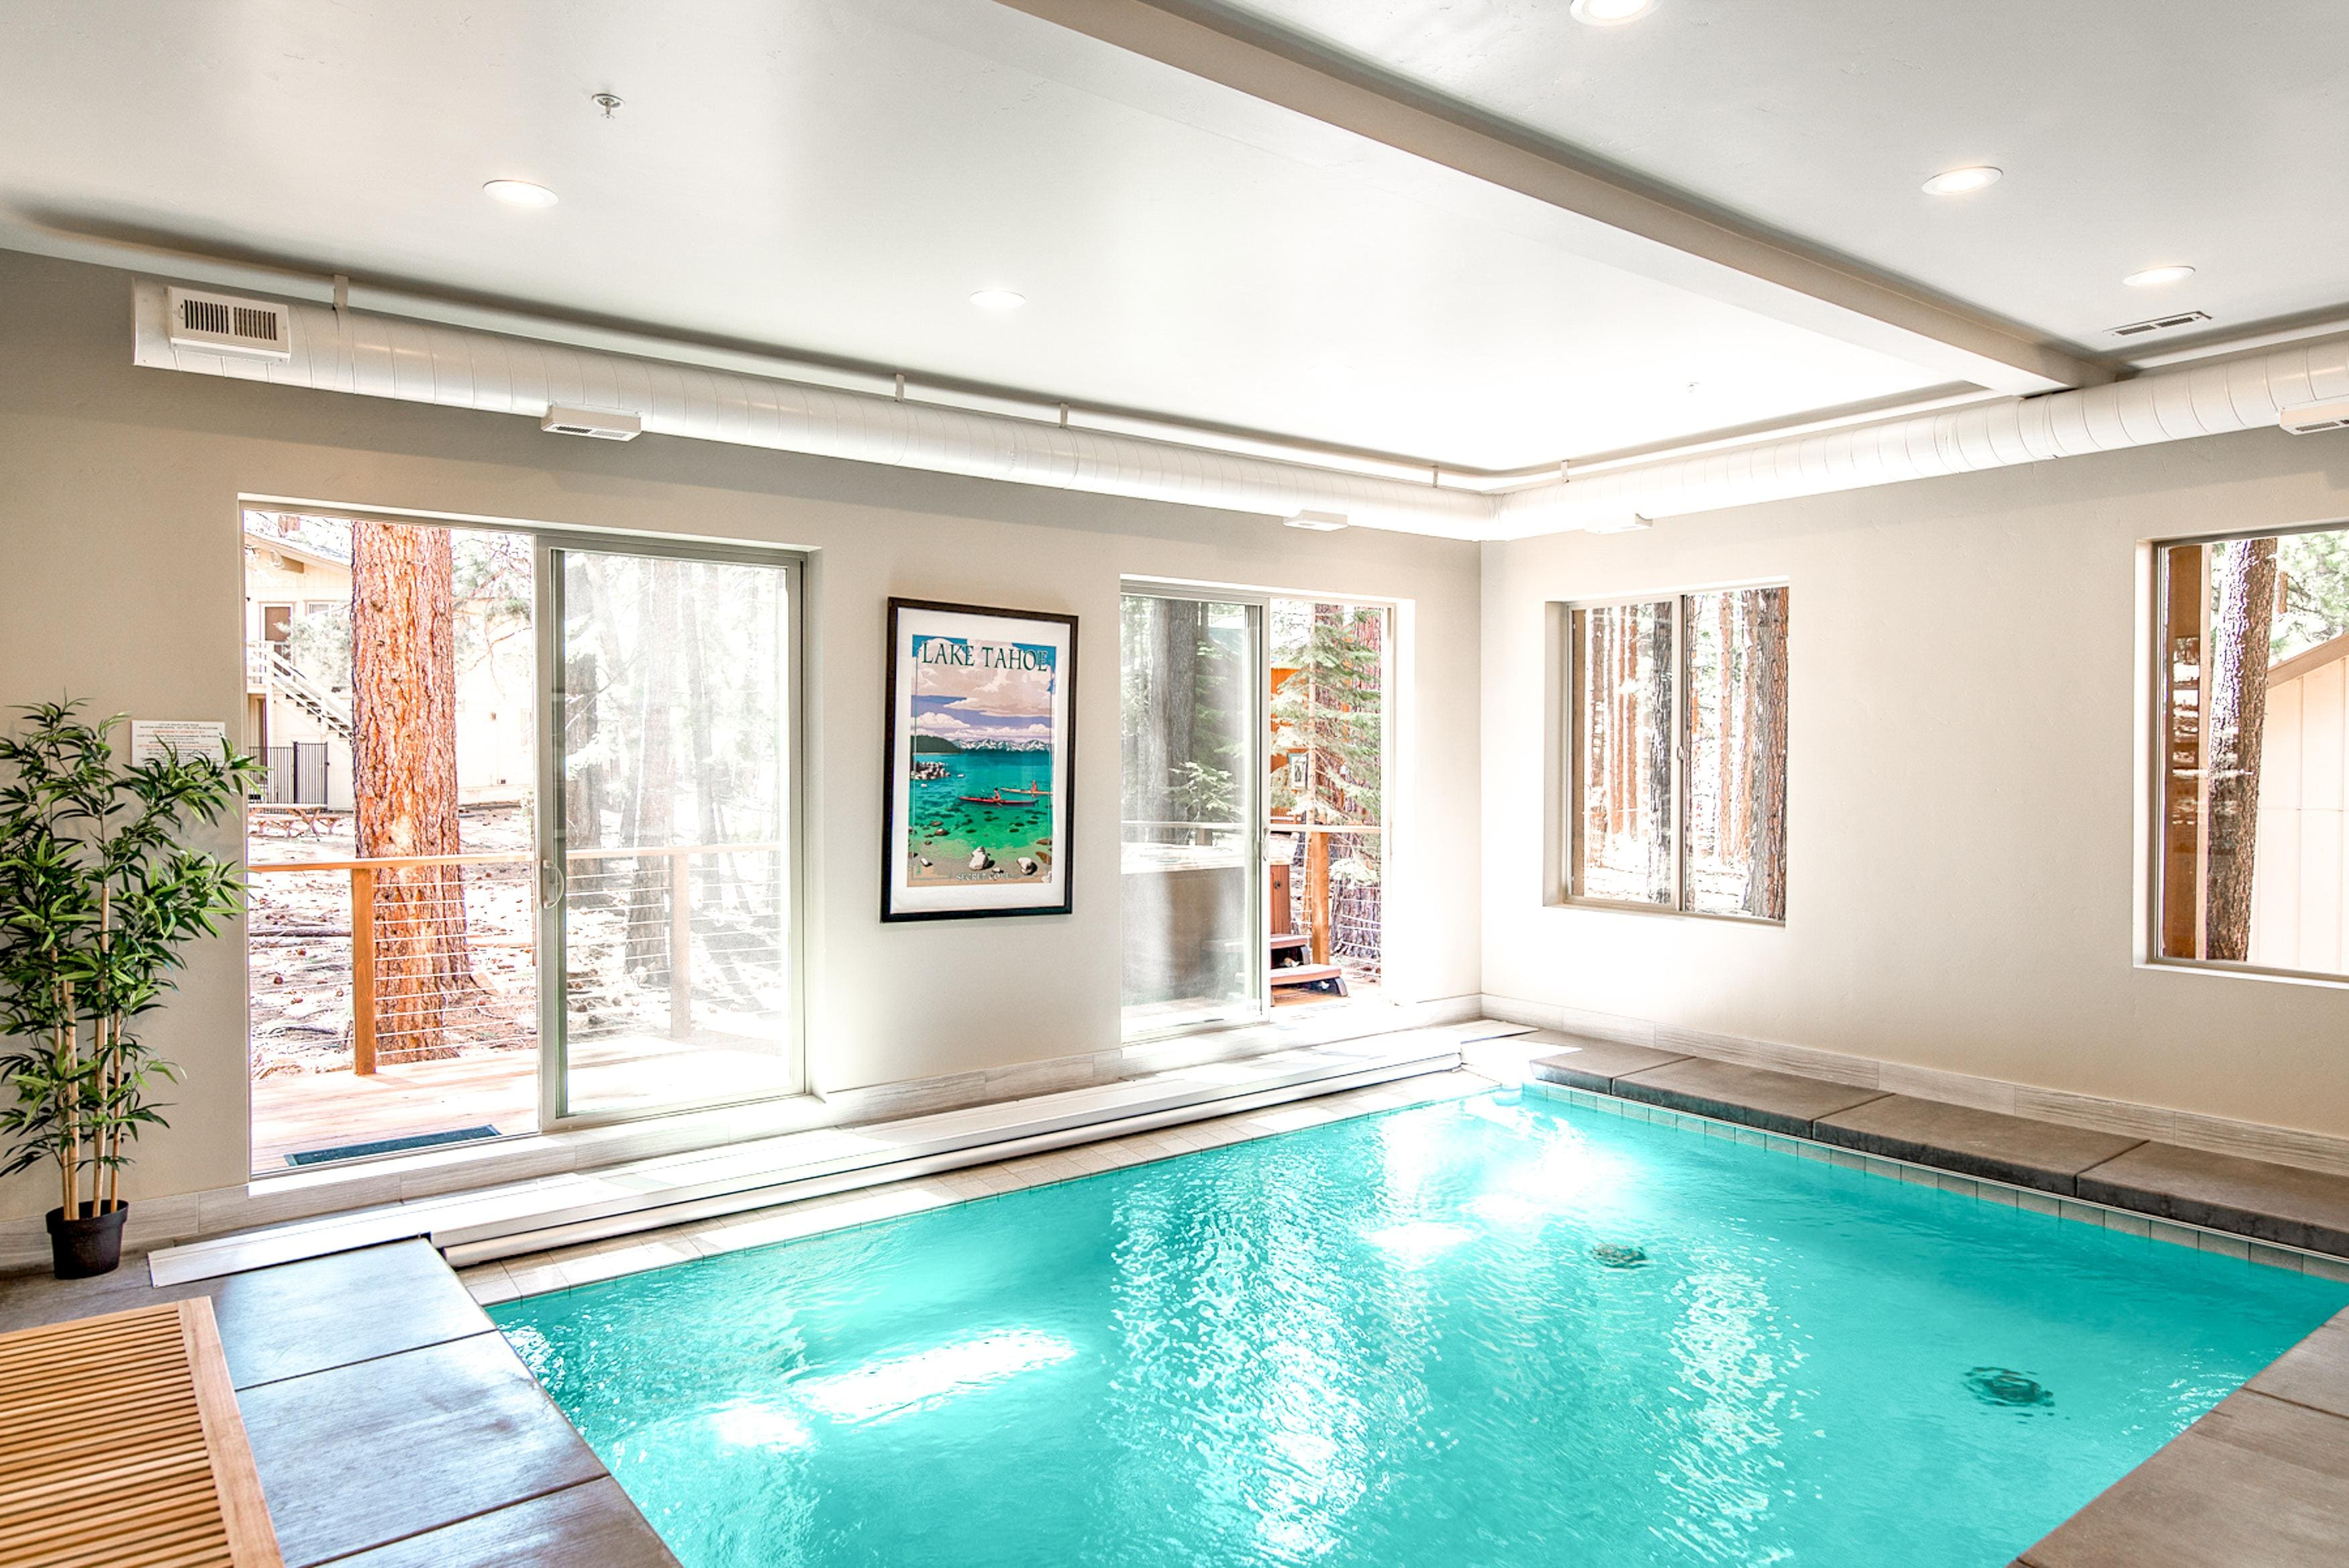 Take a dip in the indoor pool. There is a convenient full bathroom right outside the pool area to rinse off.